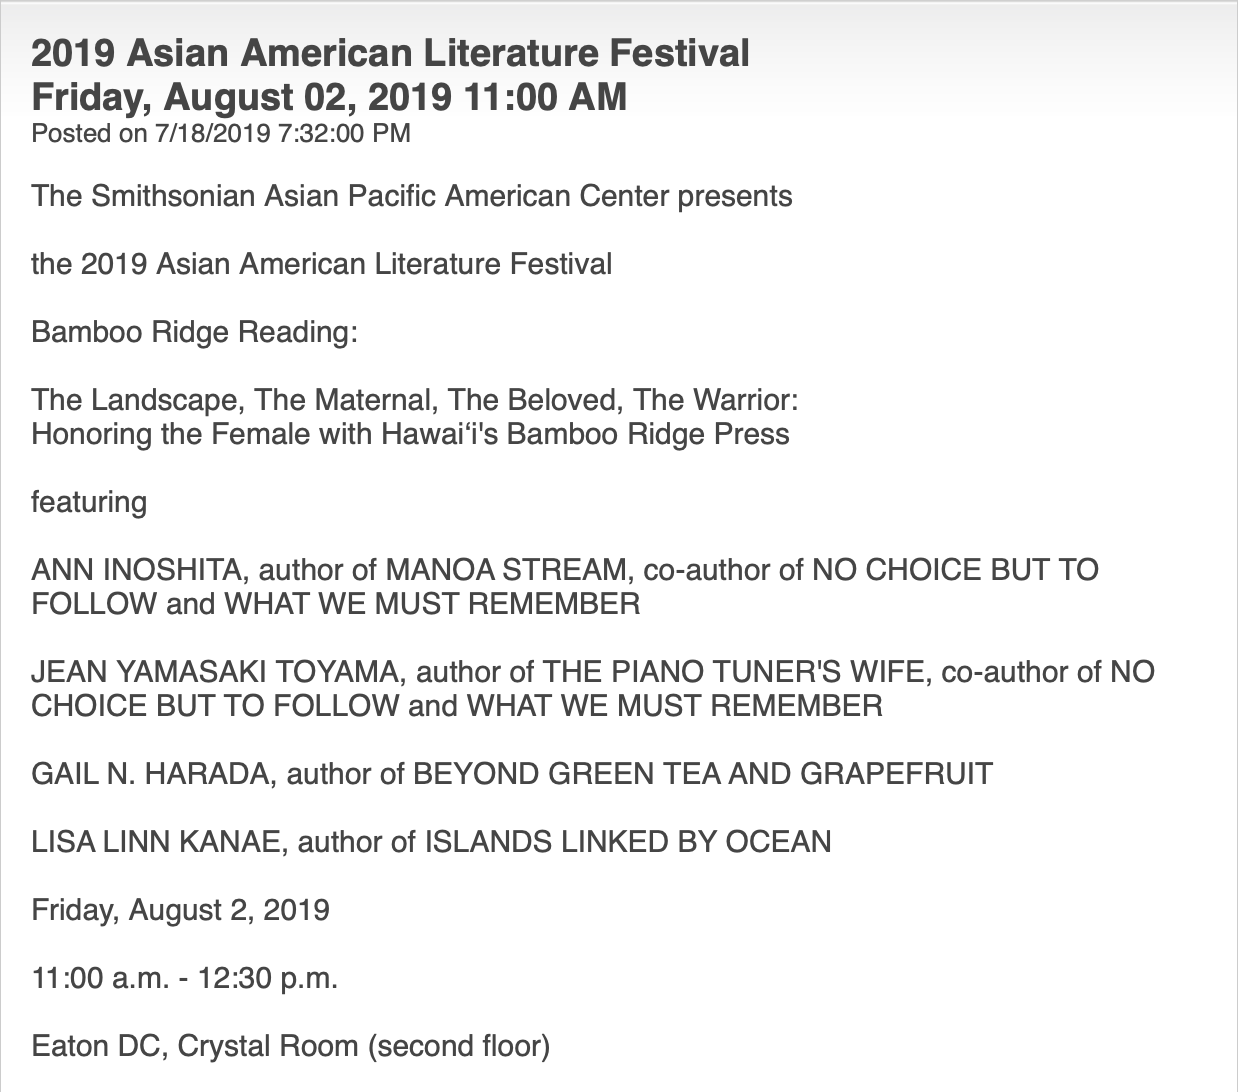 Jean Toyama will read at the Smithsonian's Crystal Room on Friday 08.02.19 at 11:00 a.m.